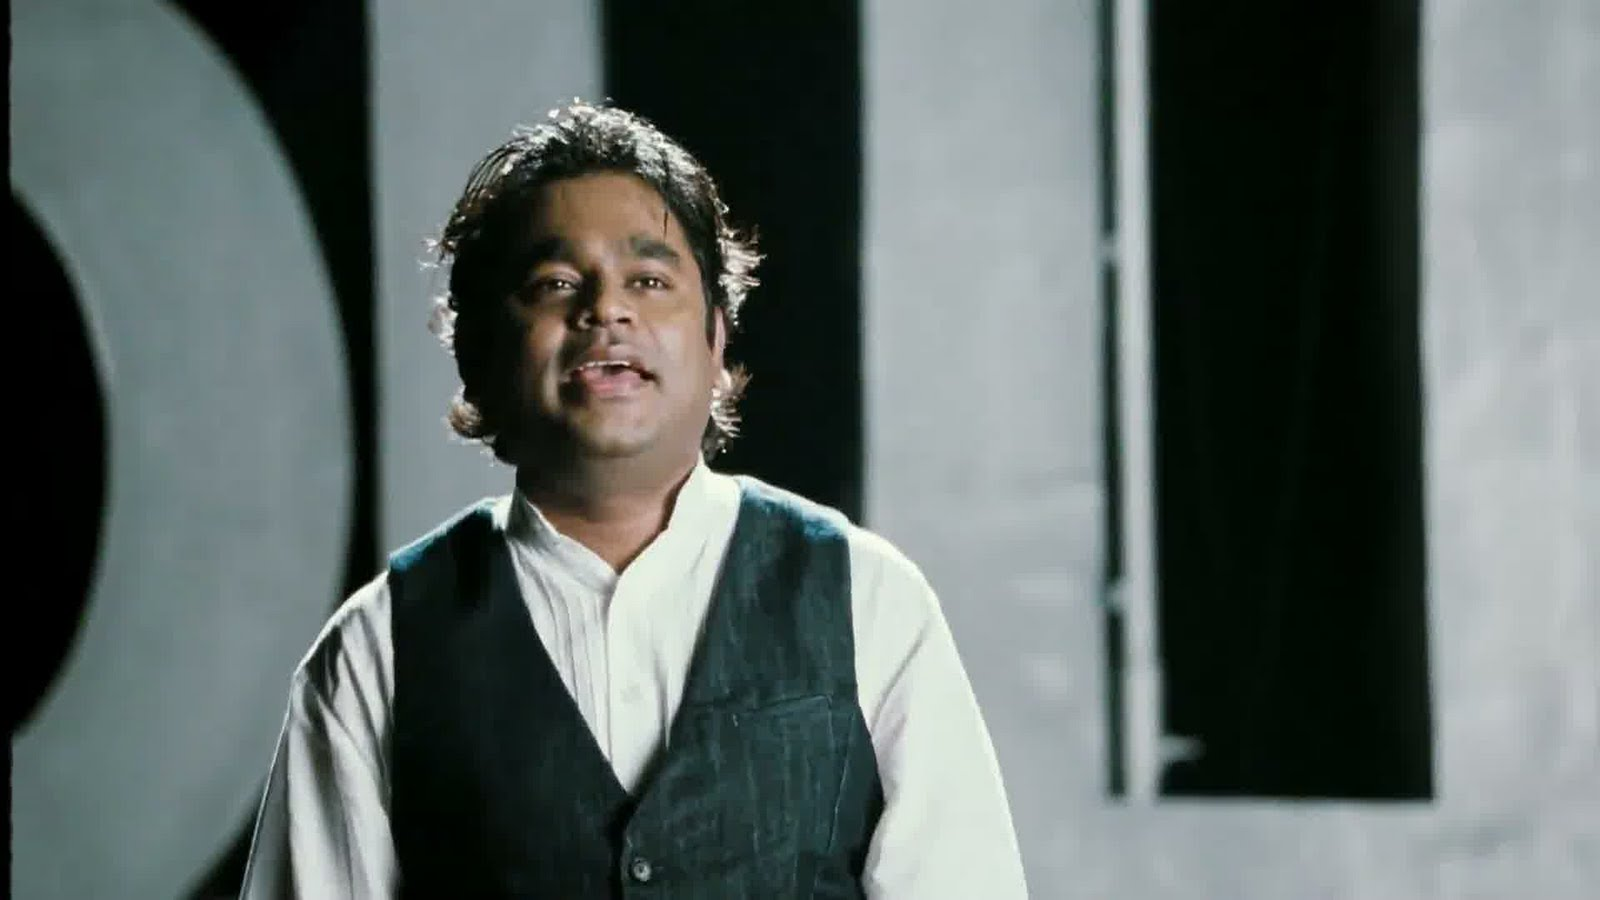 Ar Rahman Tamil 0 2 Mp3 Songs 8d Free Download Video Music